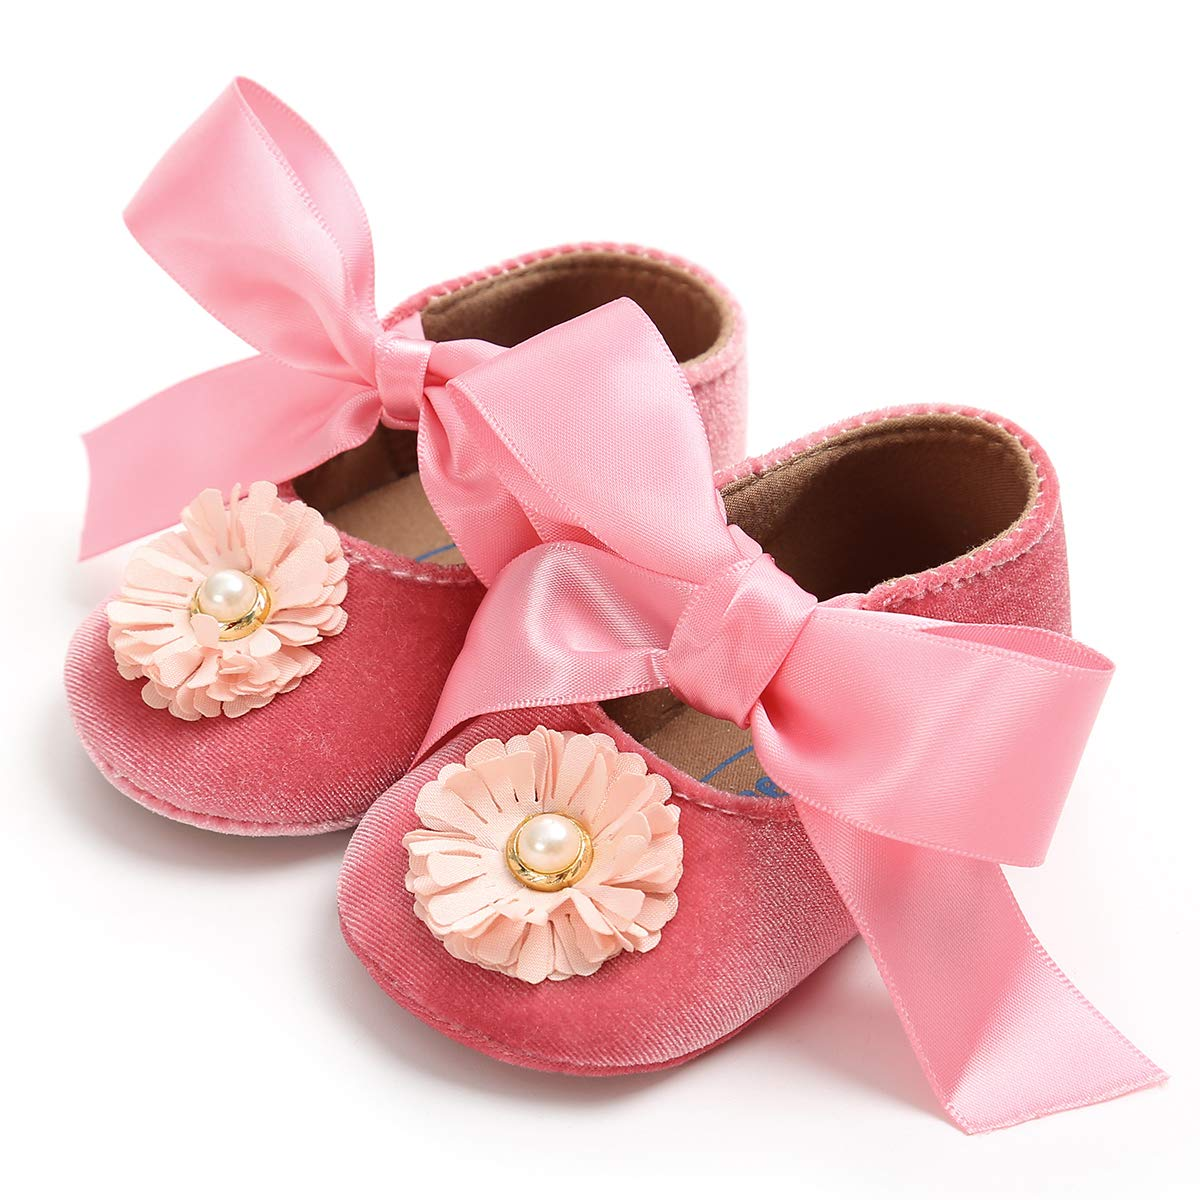 LIVEBOX Newborn Baby Girl Shoes,Anti-Slip Infant Toddler Prewalker Soft Rubber Sole Shoes with Premium Flowers Bow Mary Jane Princess Party Dress Crib Shoes